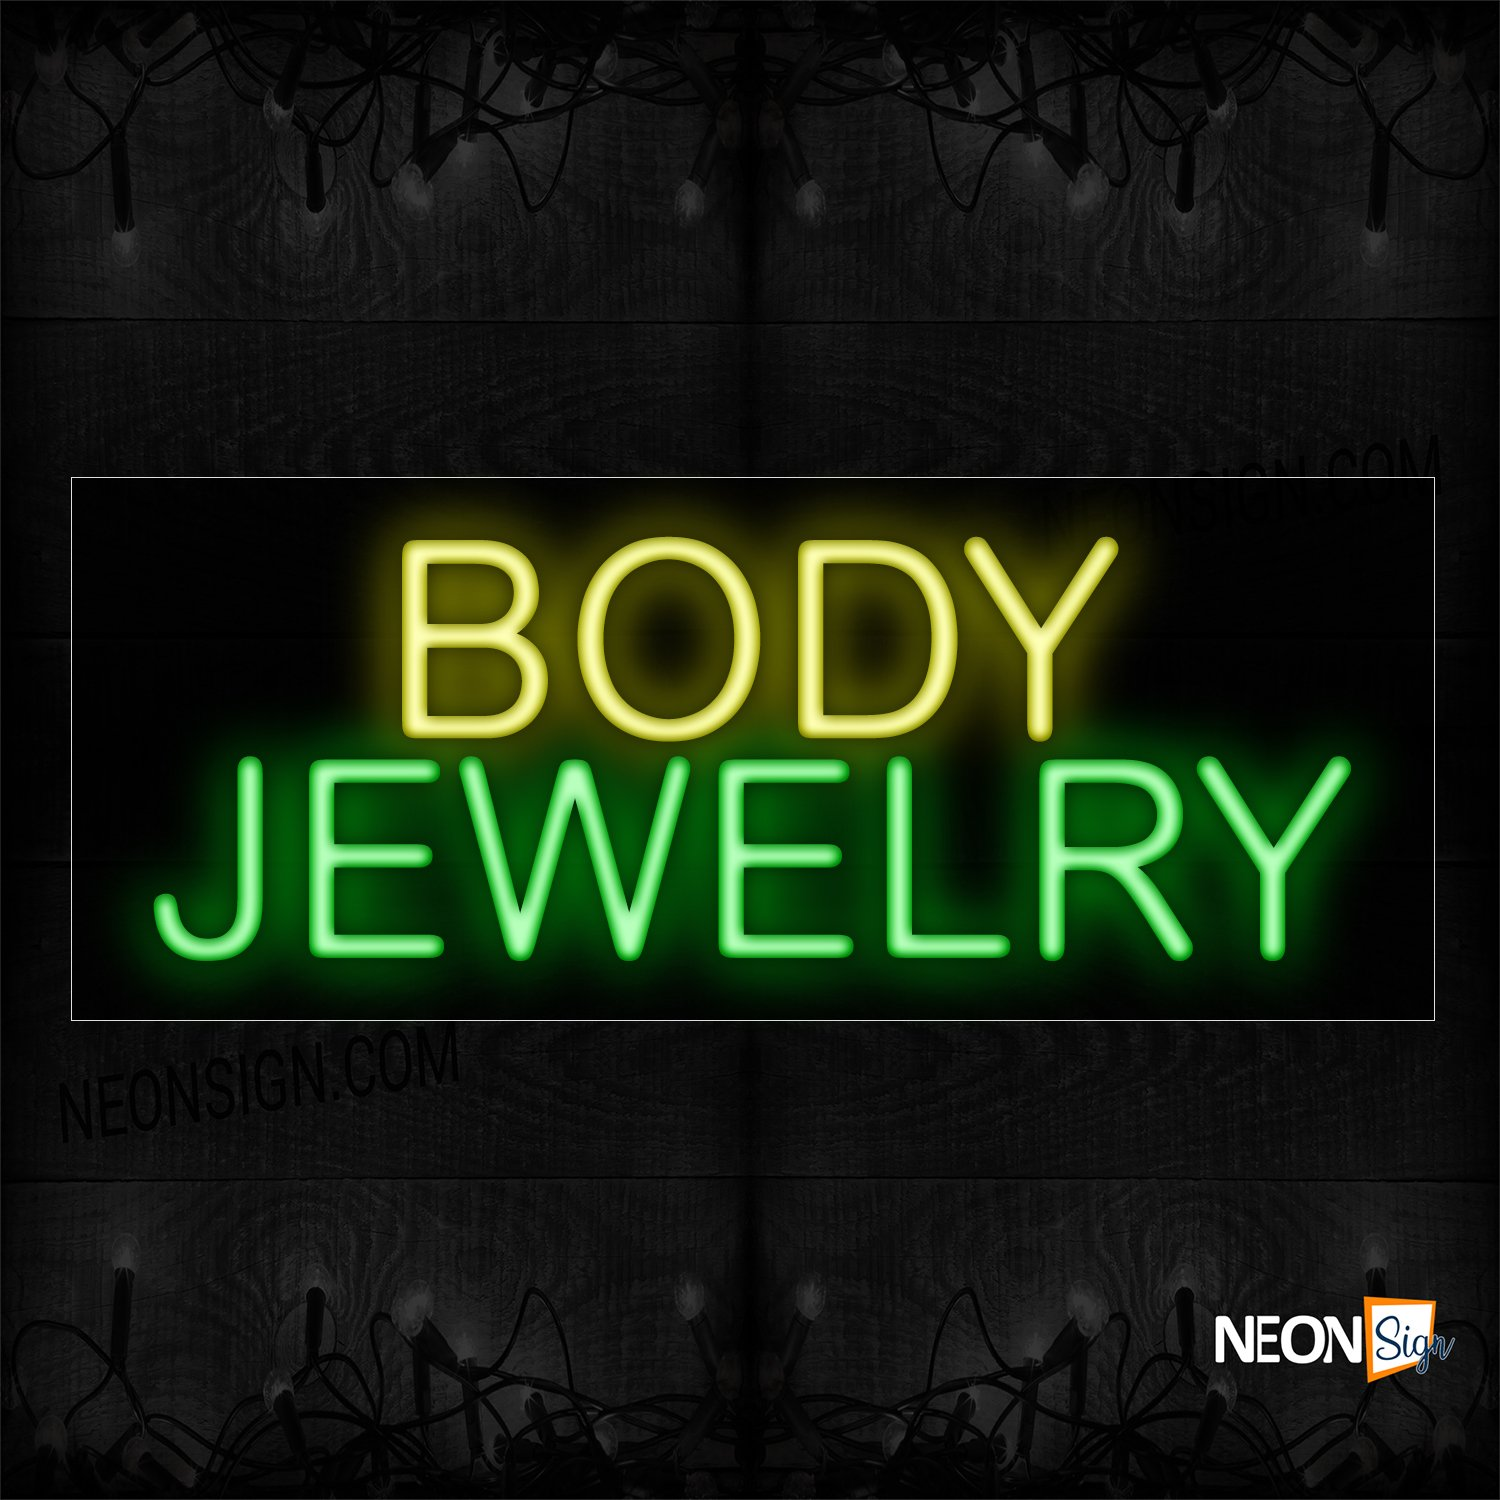 Image of 10510 Body Jewelry Neon Sign_13x32 Black Backing